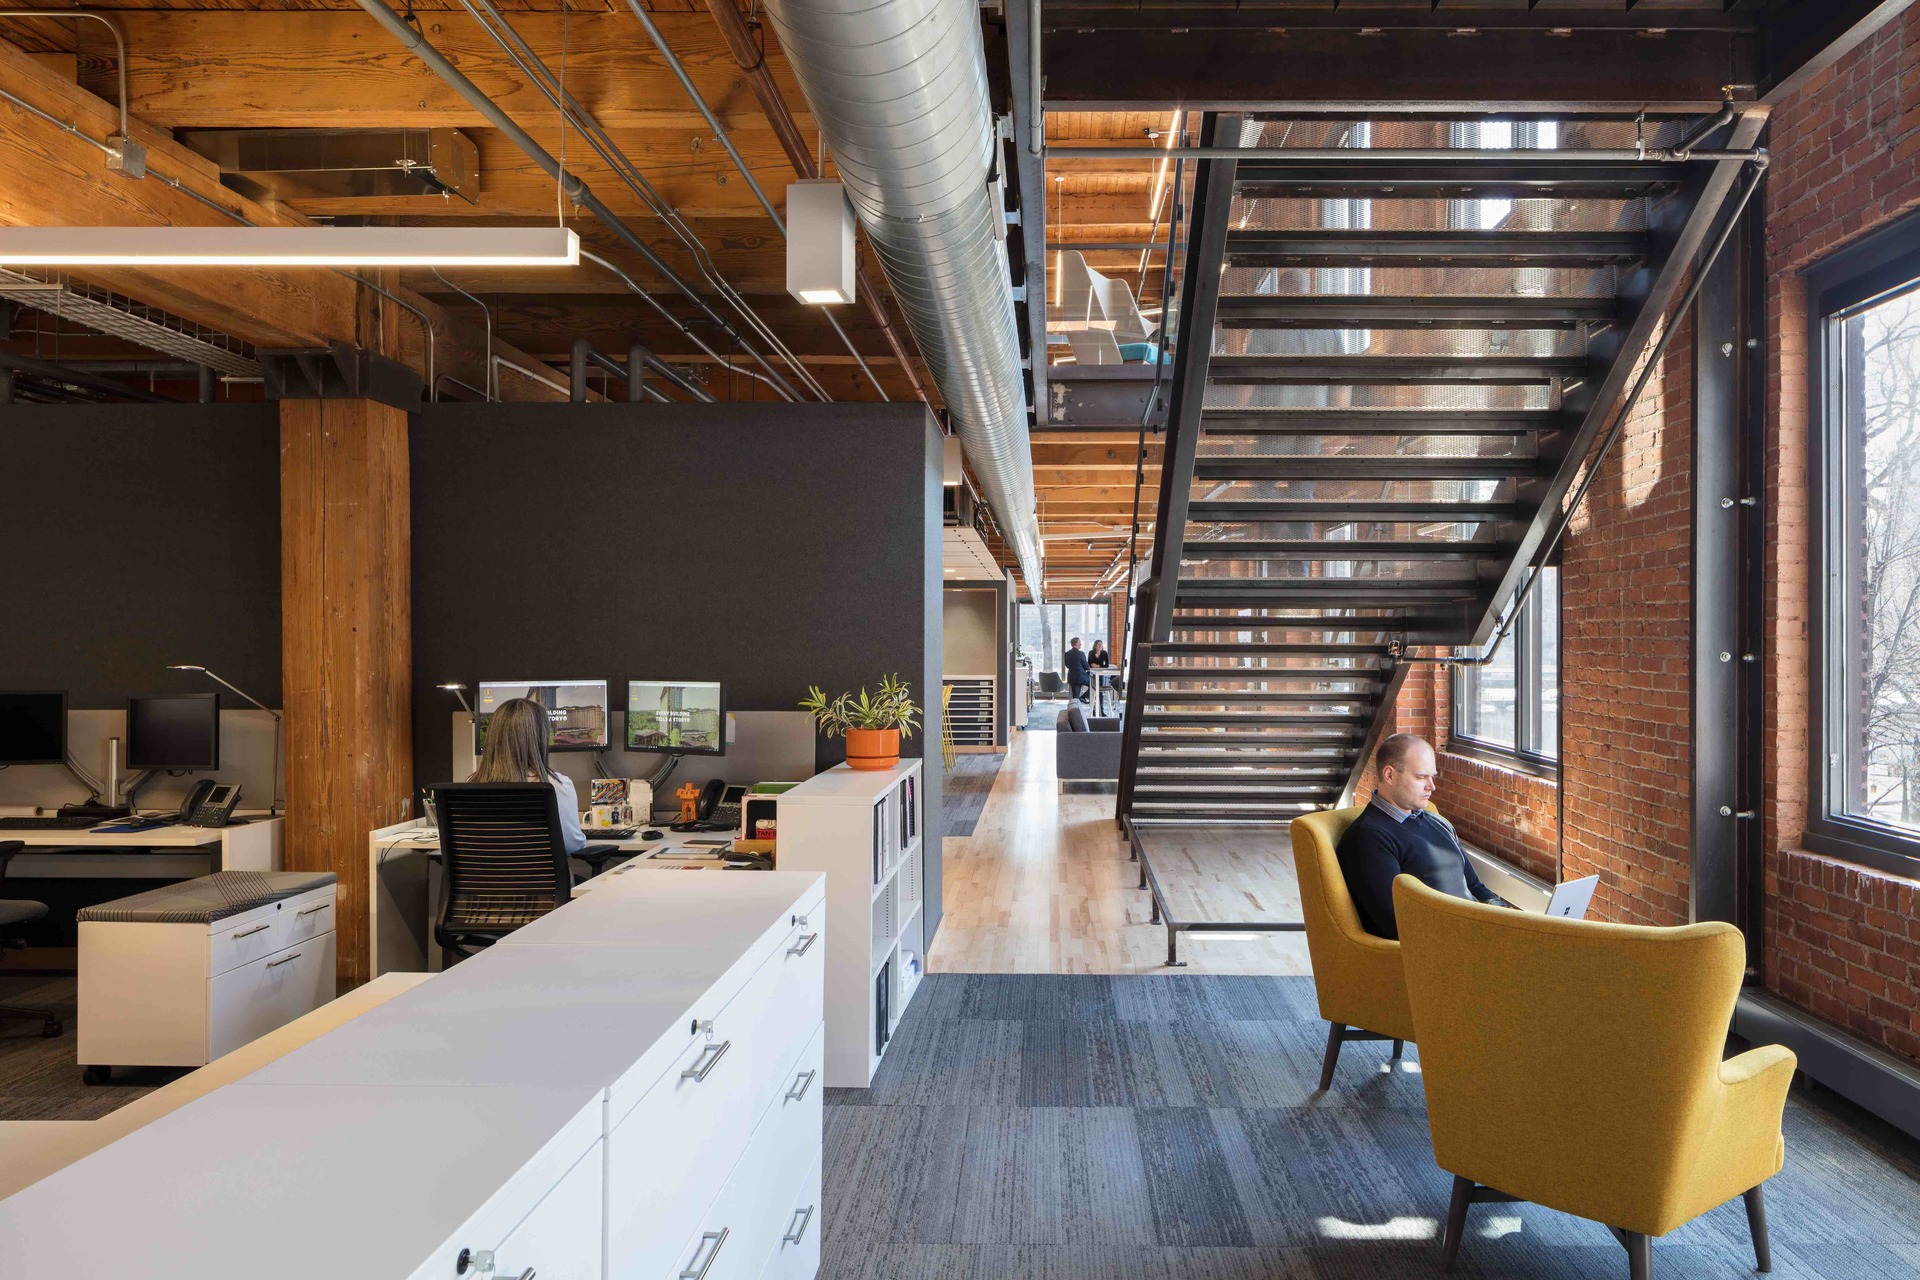 Versatile workspaces give people the flexibility to move around and find a comfortable space for increased productivity and collaboration.